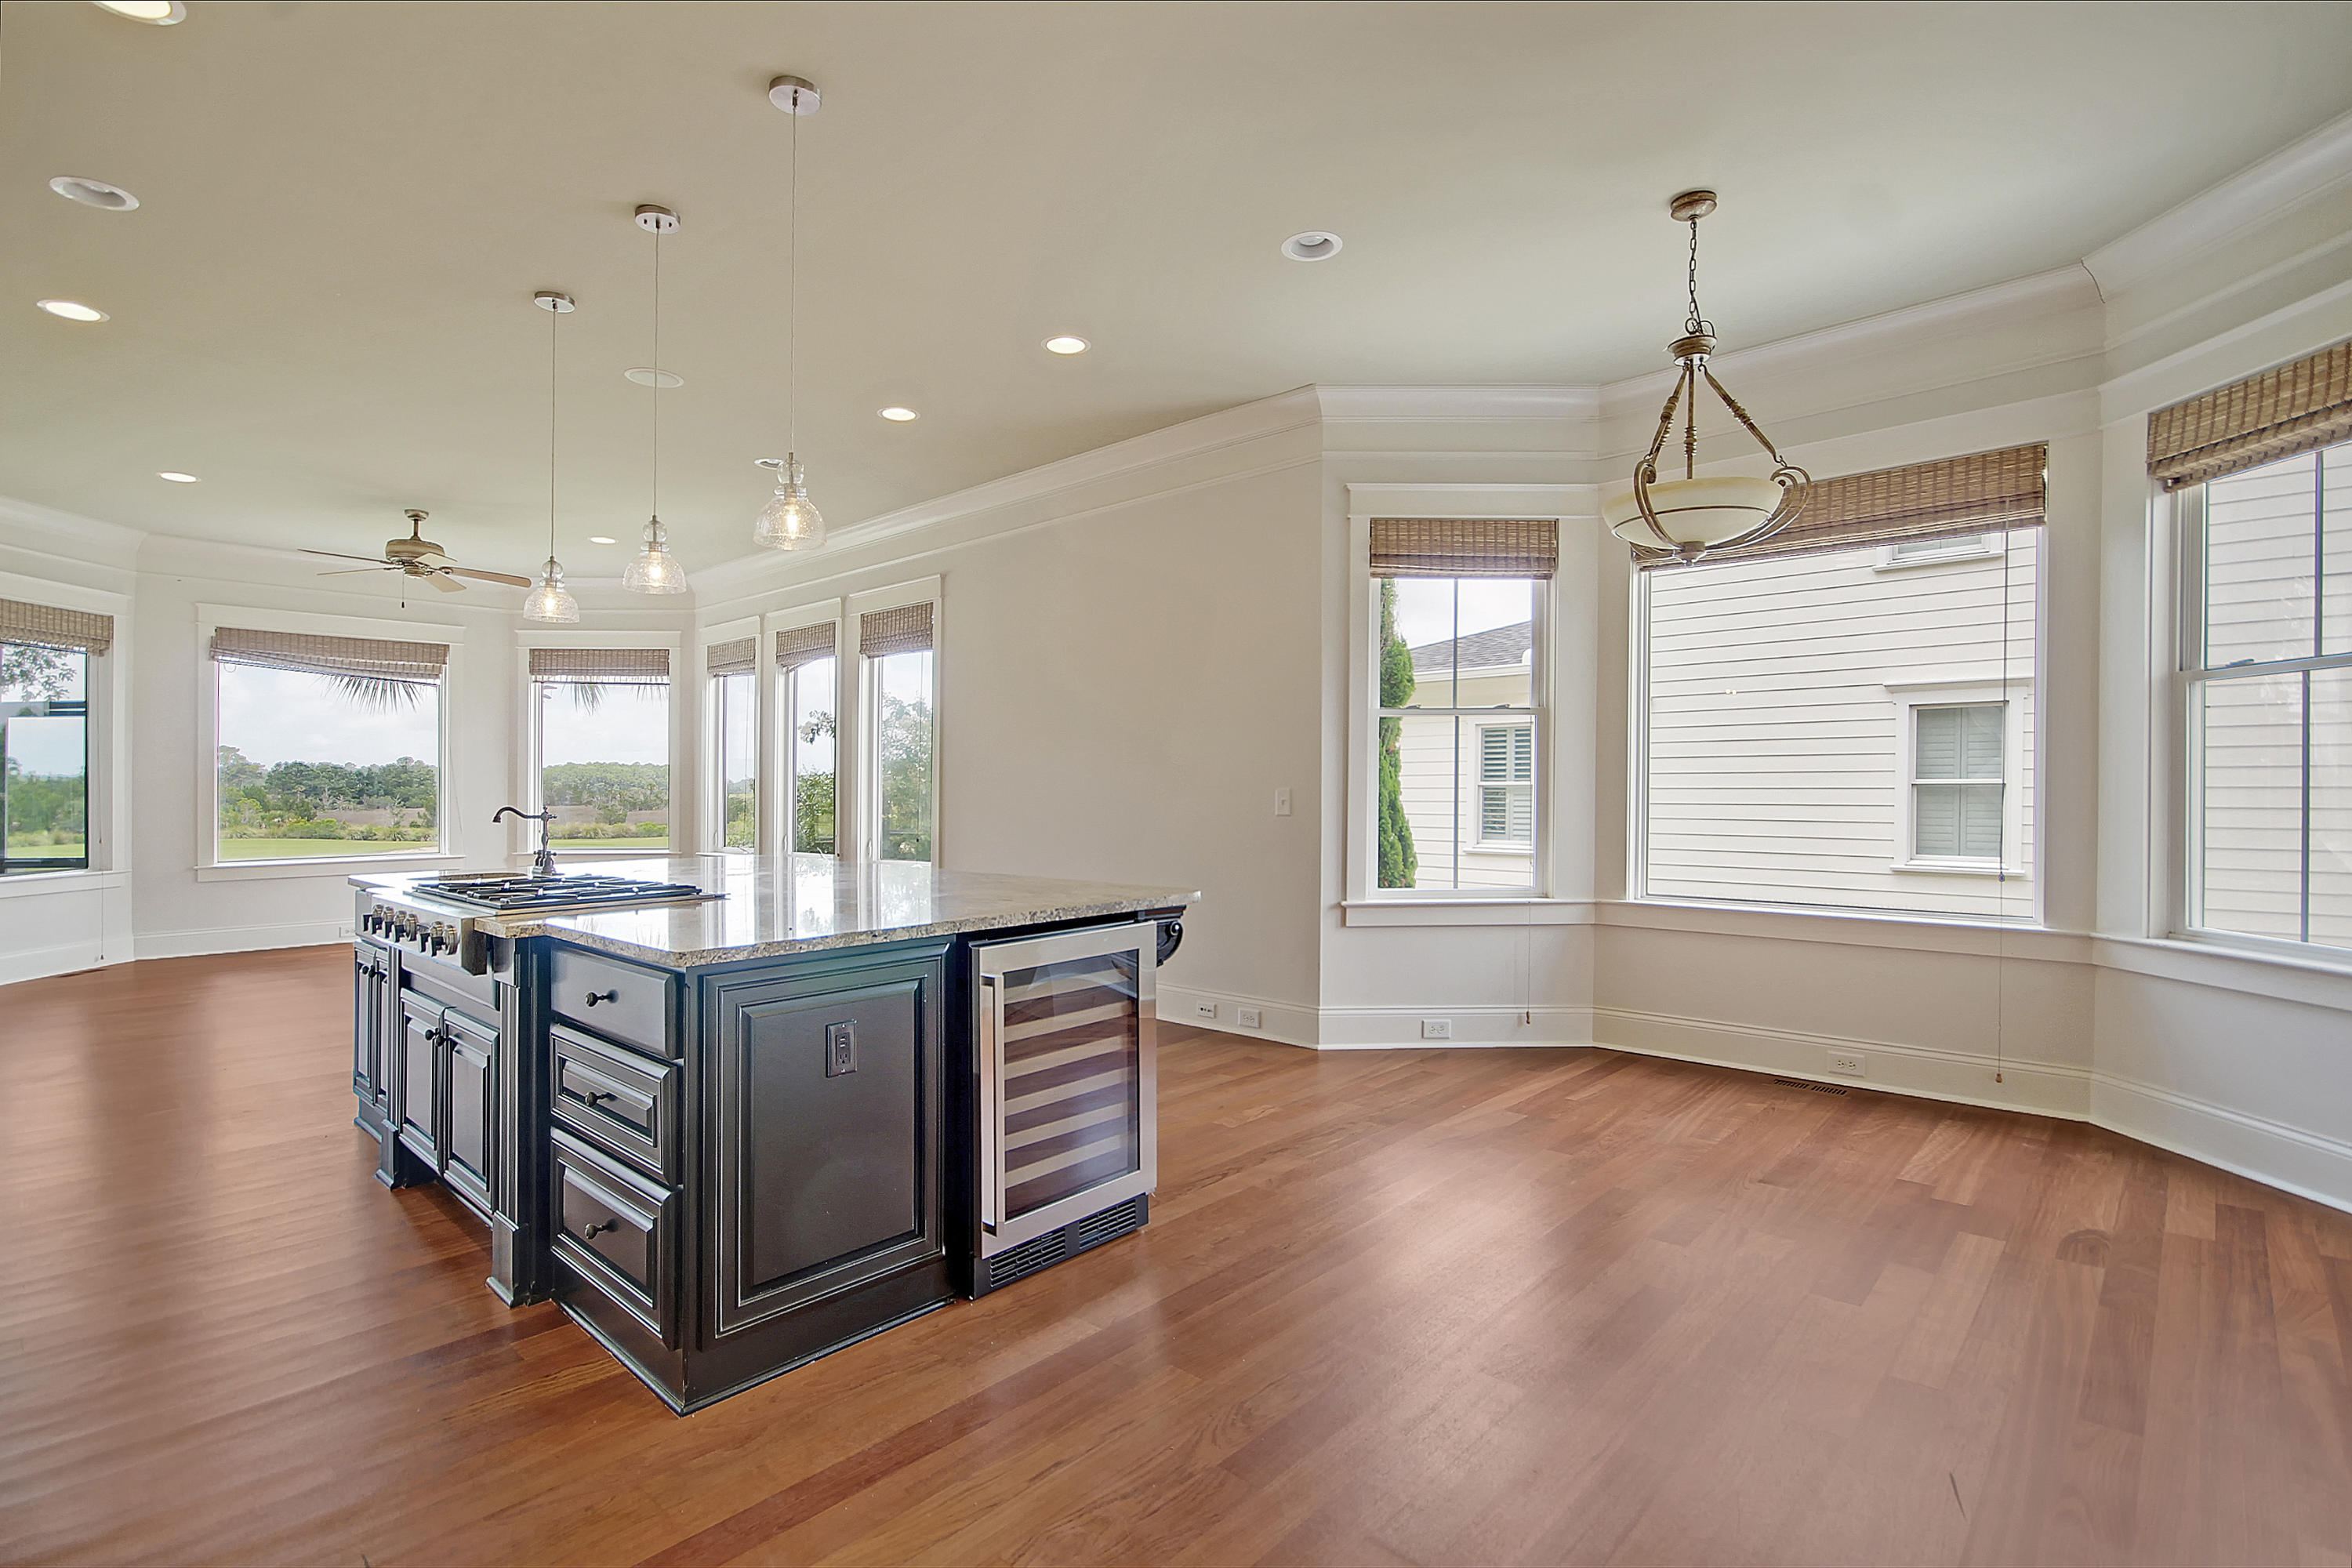 Rivertowne Country Club Homes For Sale - 1632 Rivertowne Country Club, Mount Pleasant, SC - 65